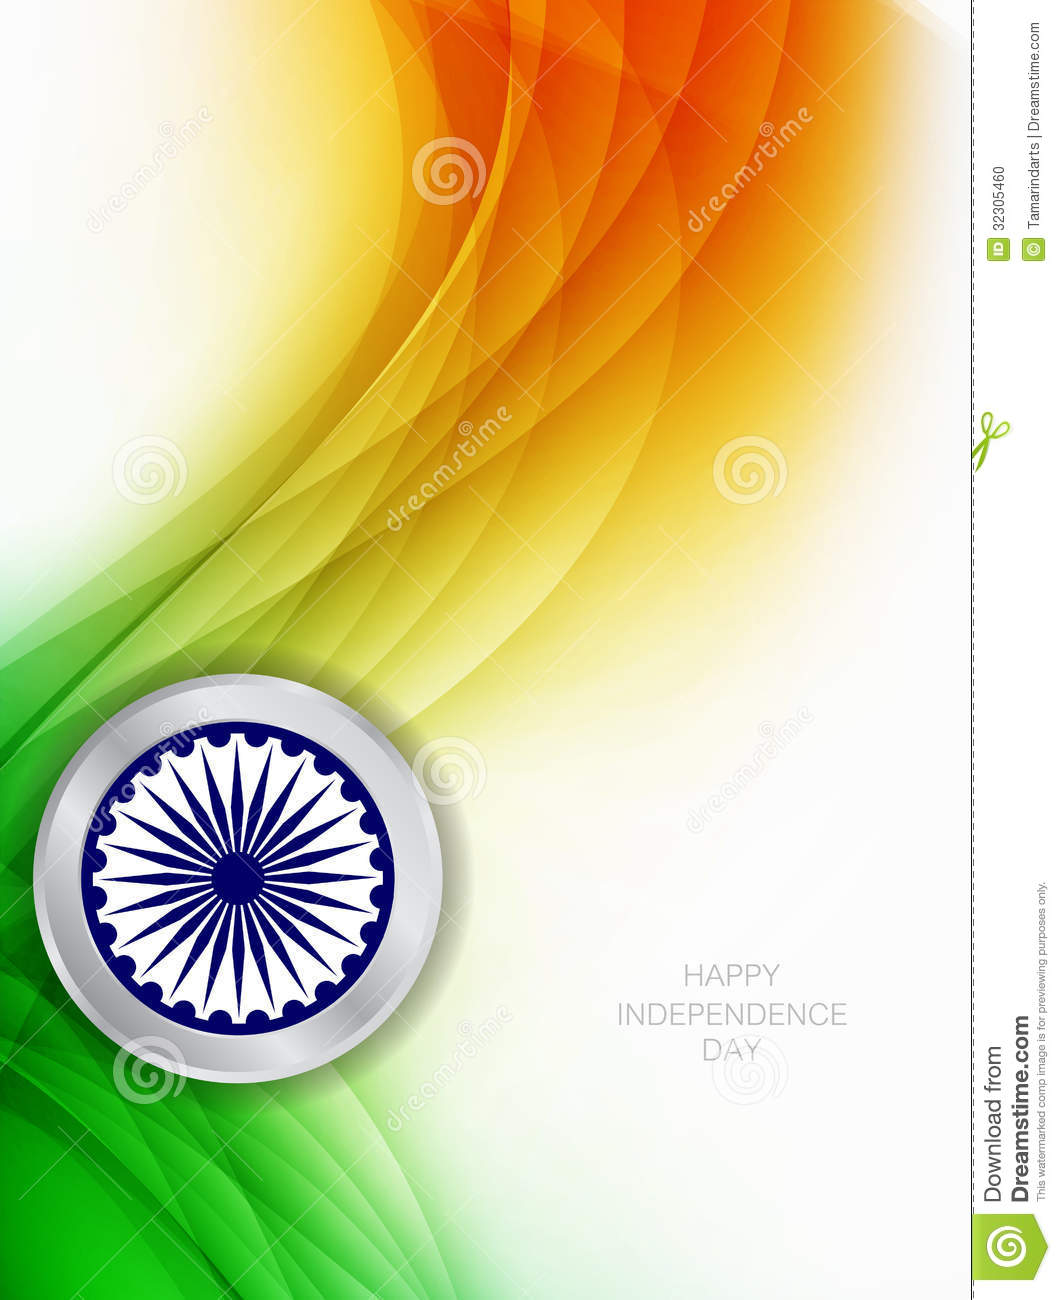 Beautiful Background For Indian Independence Day Illustration